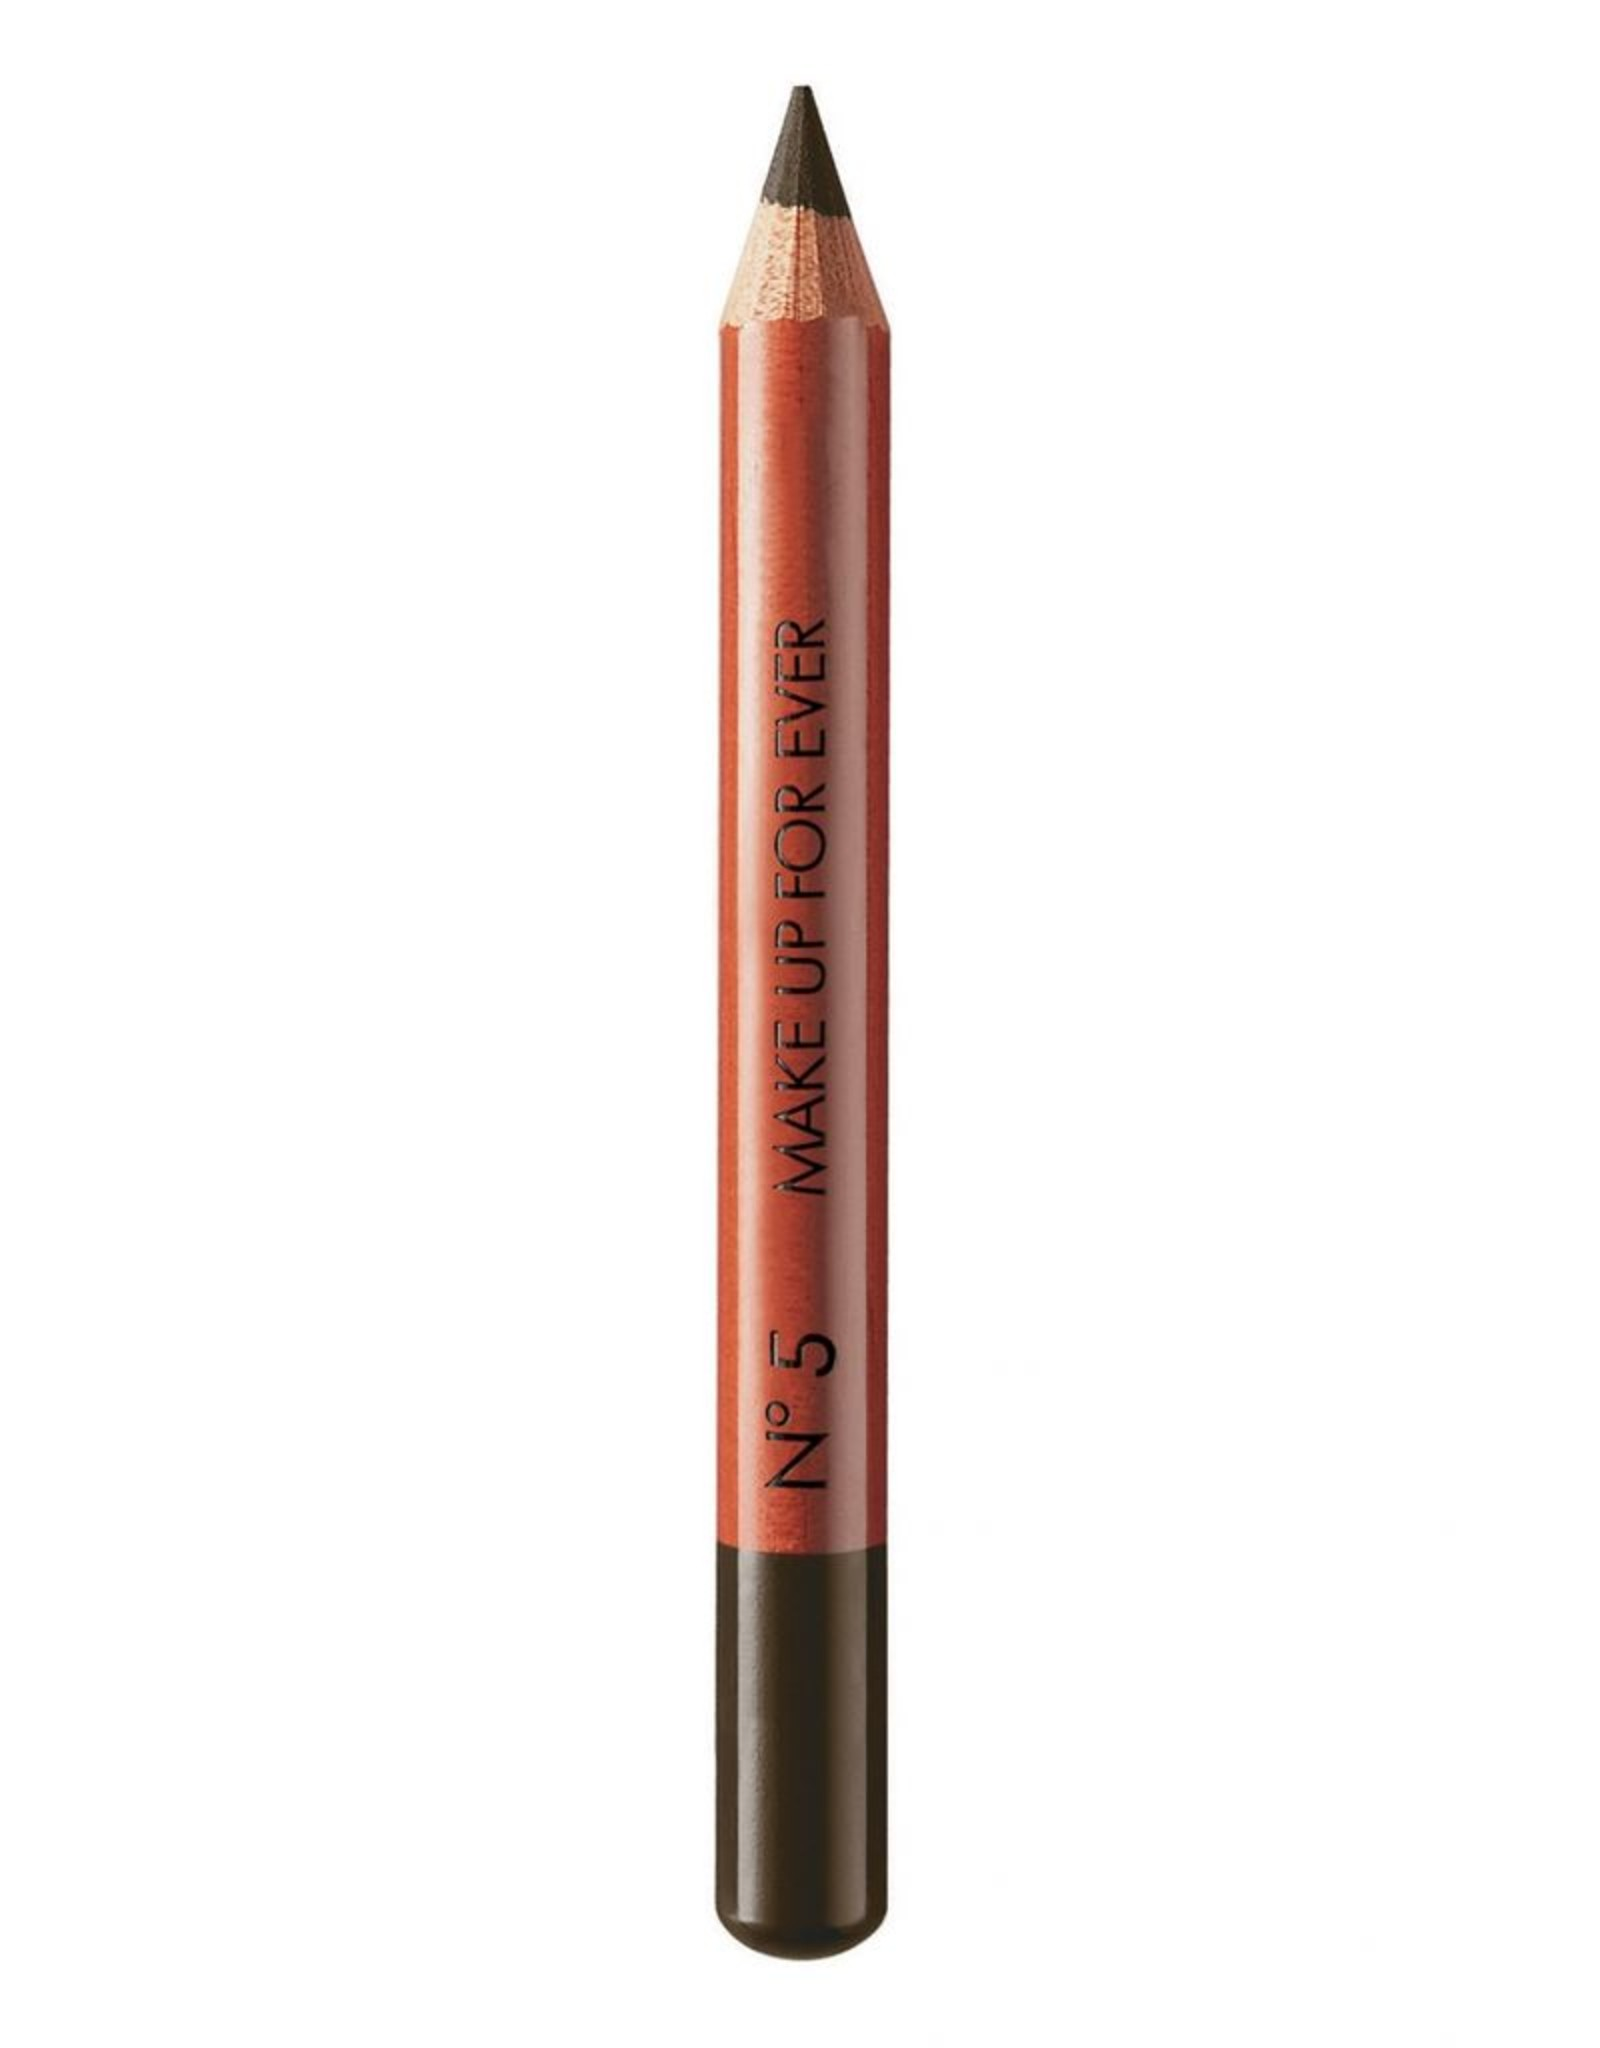 MUFE CRAYON SOURCILS 1,29gN5 brun noir / brown black